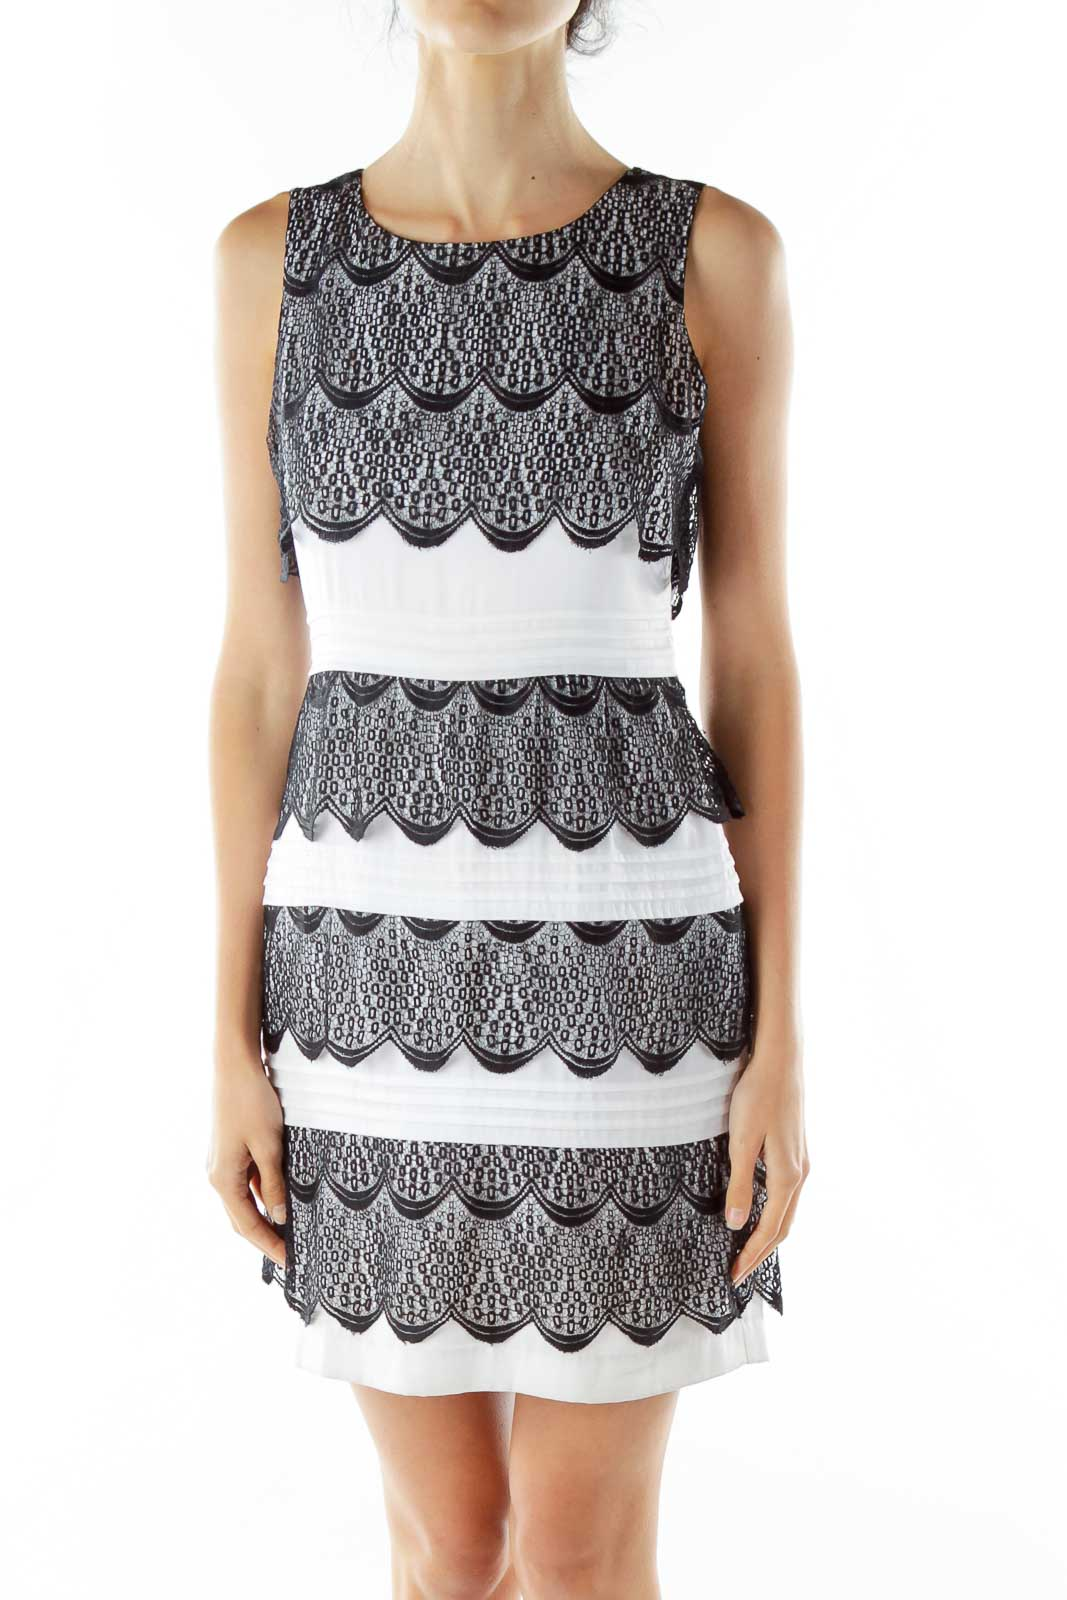 Black White Lace Cocktail Dress